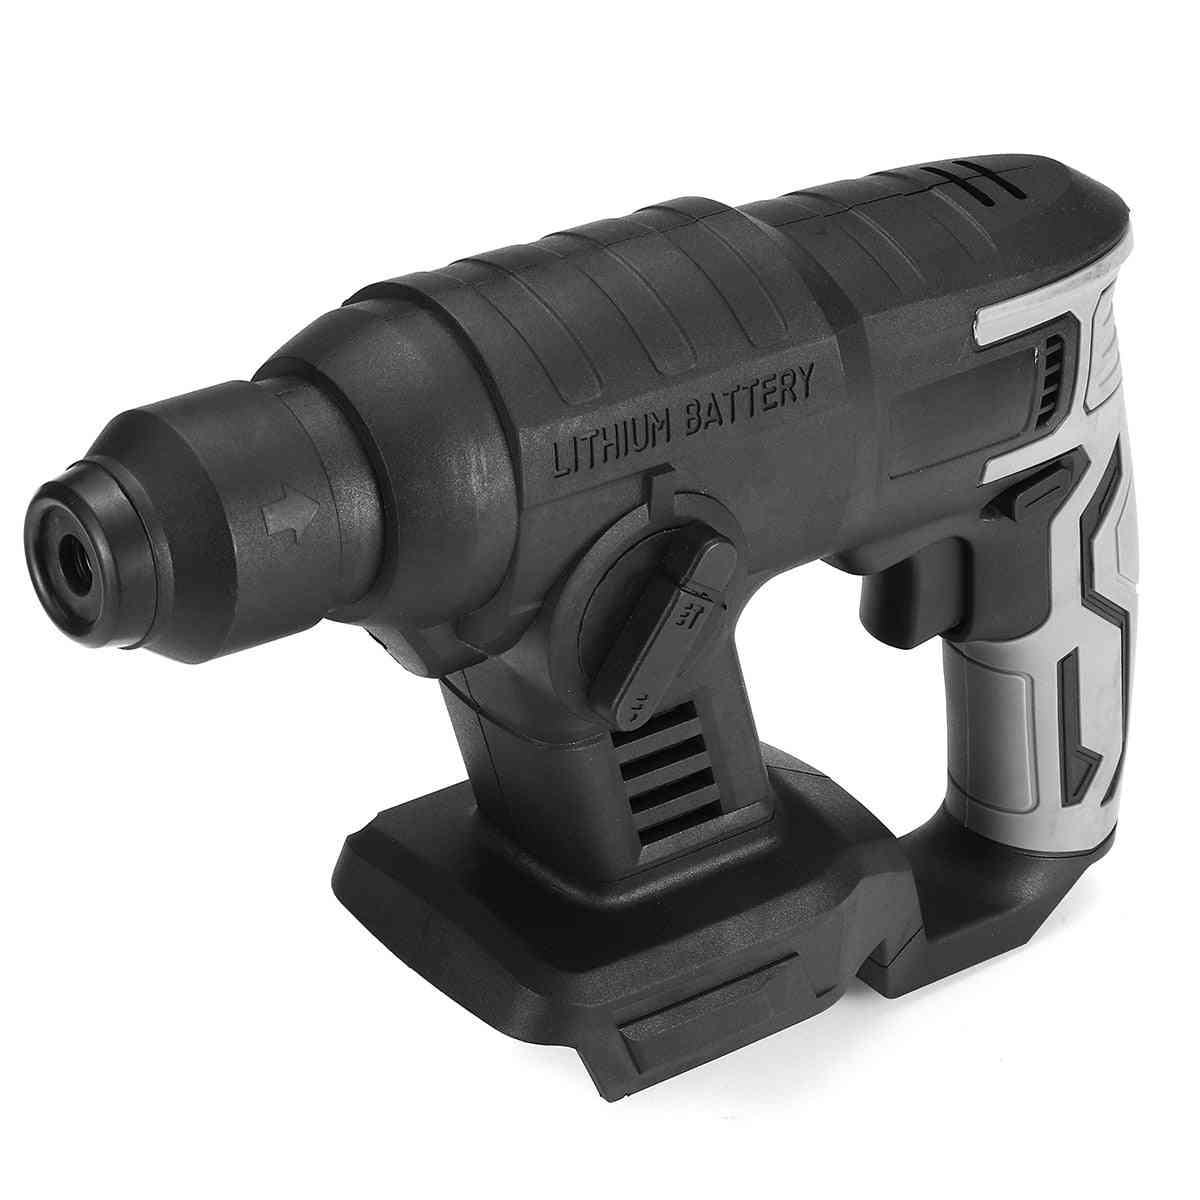 Rechargeable Brushless Cordless Rotary Hammer Drill